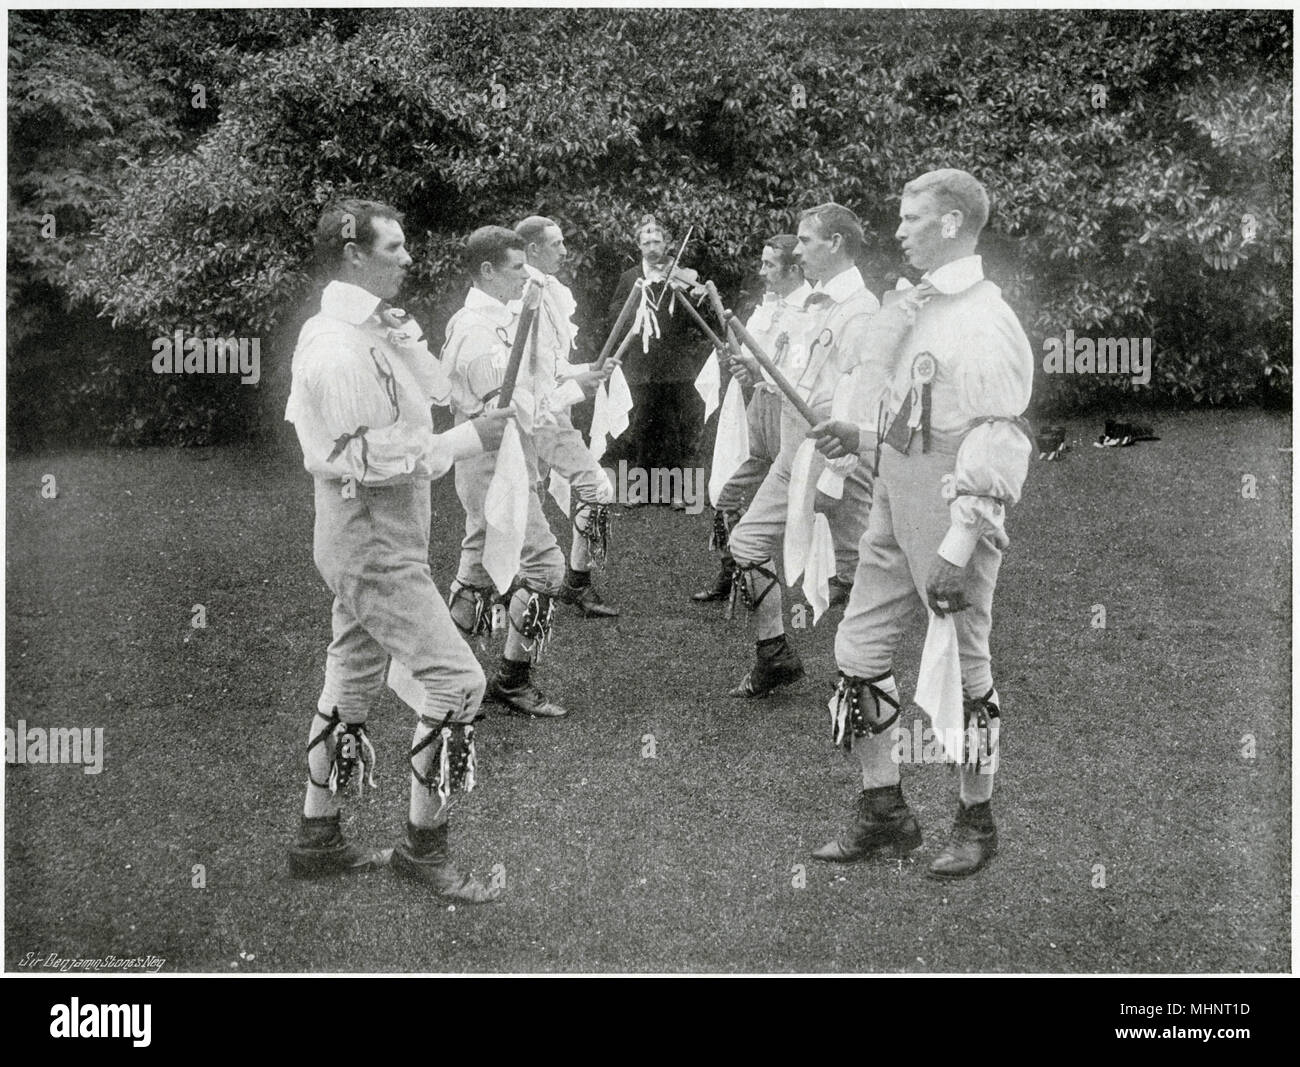 'Dancing the Hay', English morris dancers in traditional clothing at Stratford-upon-Avon, Mop Fair. Most probable derivation of the word 'hay' is from the French haie, a hedge, the dancers standing in two rows, being linked to hedges. But the hay was danced in a circle as well as a line.     Date: 1899 - Stock Image